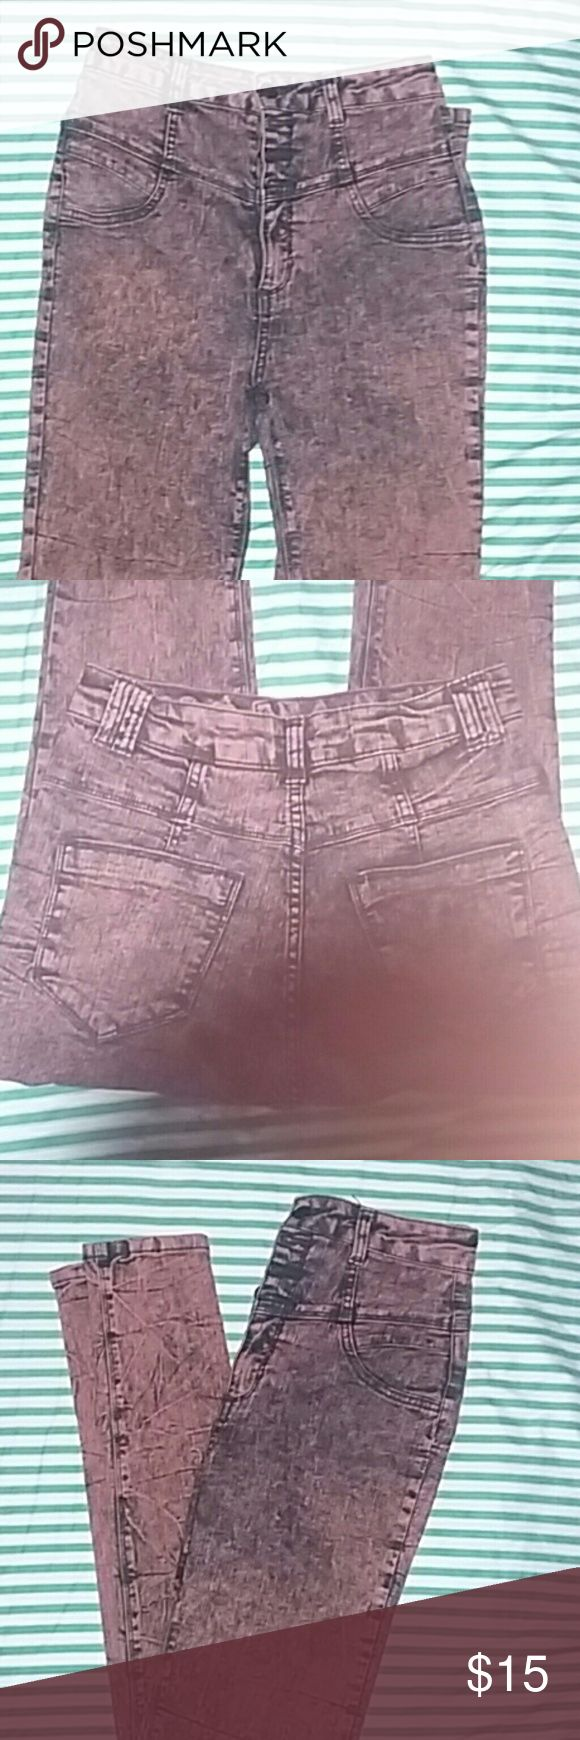 High Waist Jeans🍑 80% Cotton. Comfortable skinny jeans. Front has four buttons and a zipper with fake pockets & back side has two pockets.  Can take better pictures if interested! Jeans Skinny